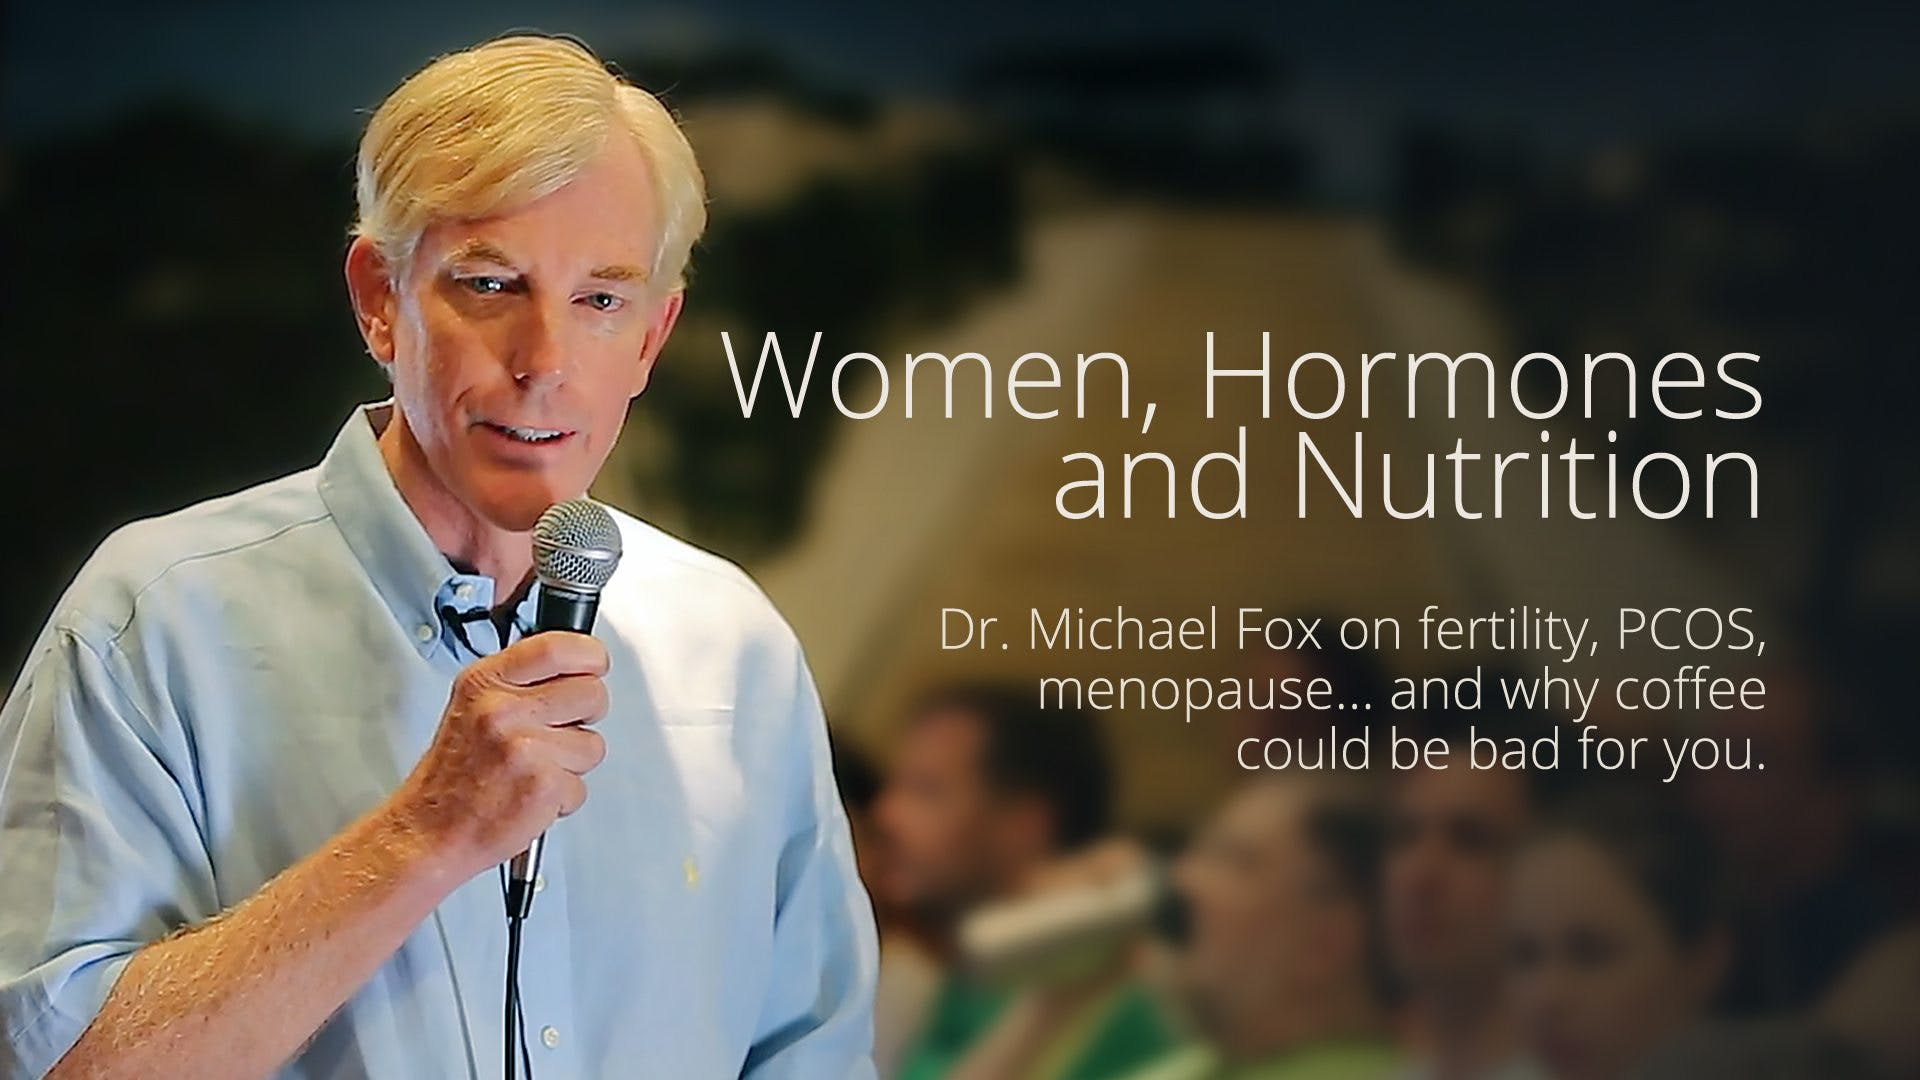 Women, Hormones and Nutrition